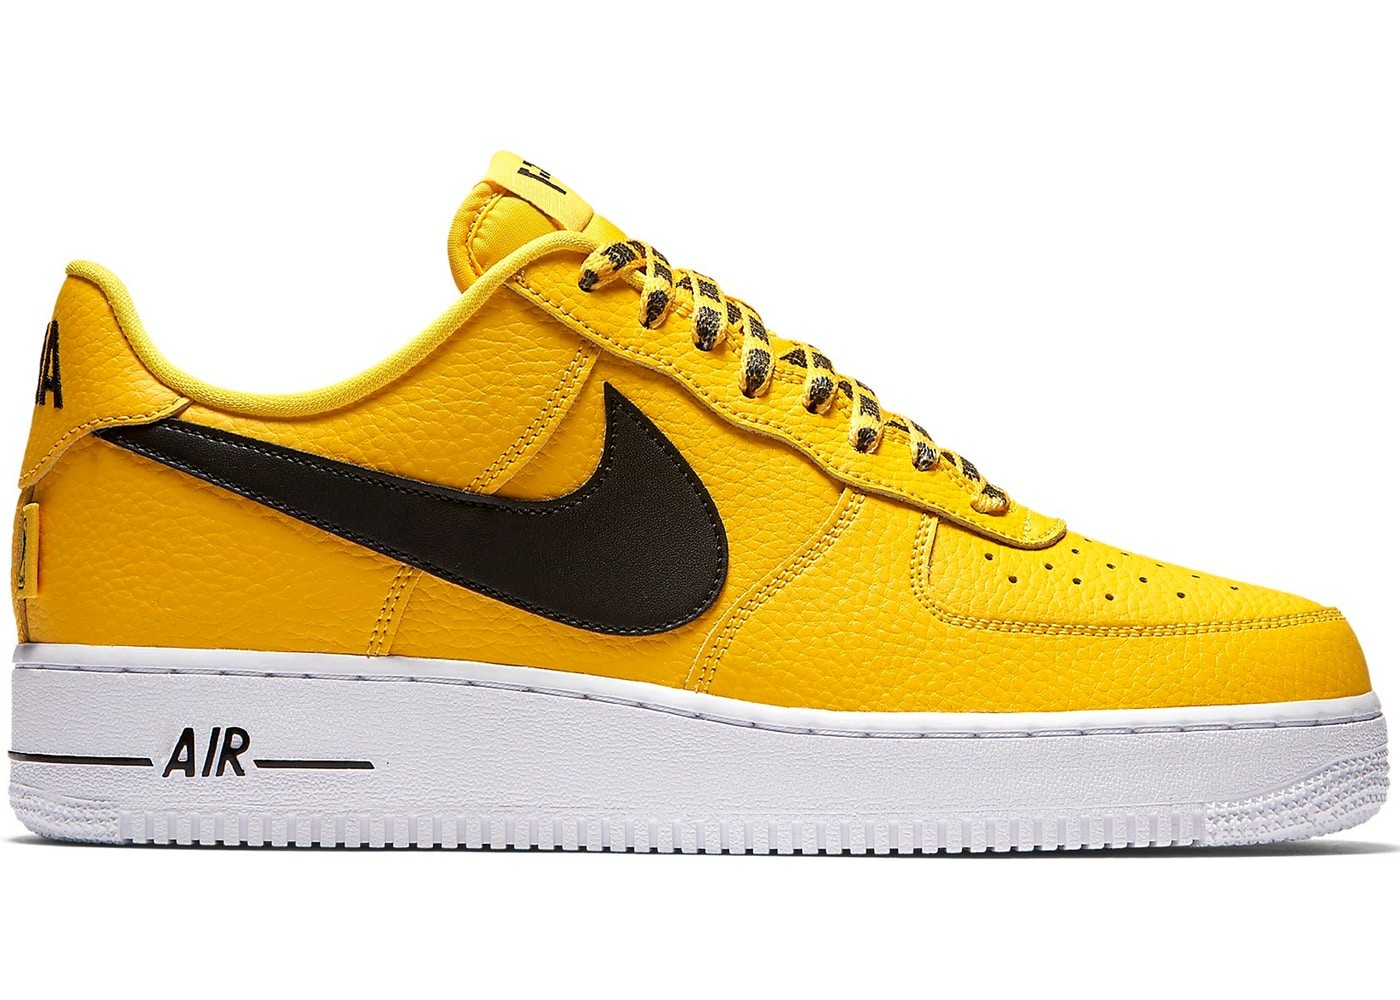 Nike Air Force 1 Low Gialle/Nere Uomo 823511-701